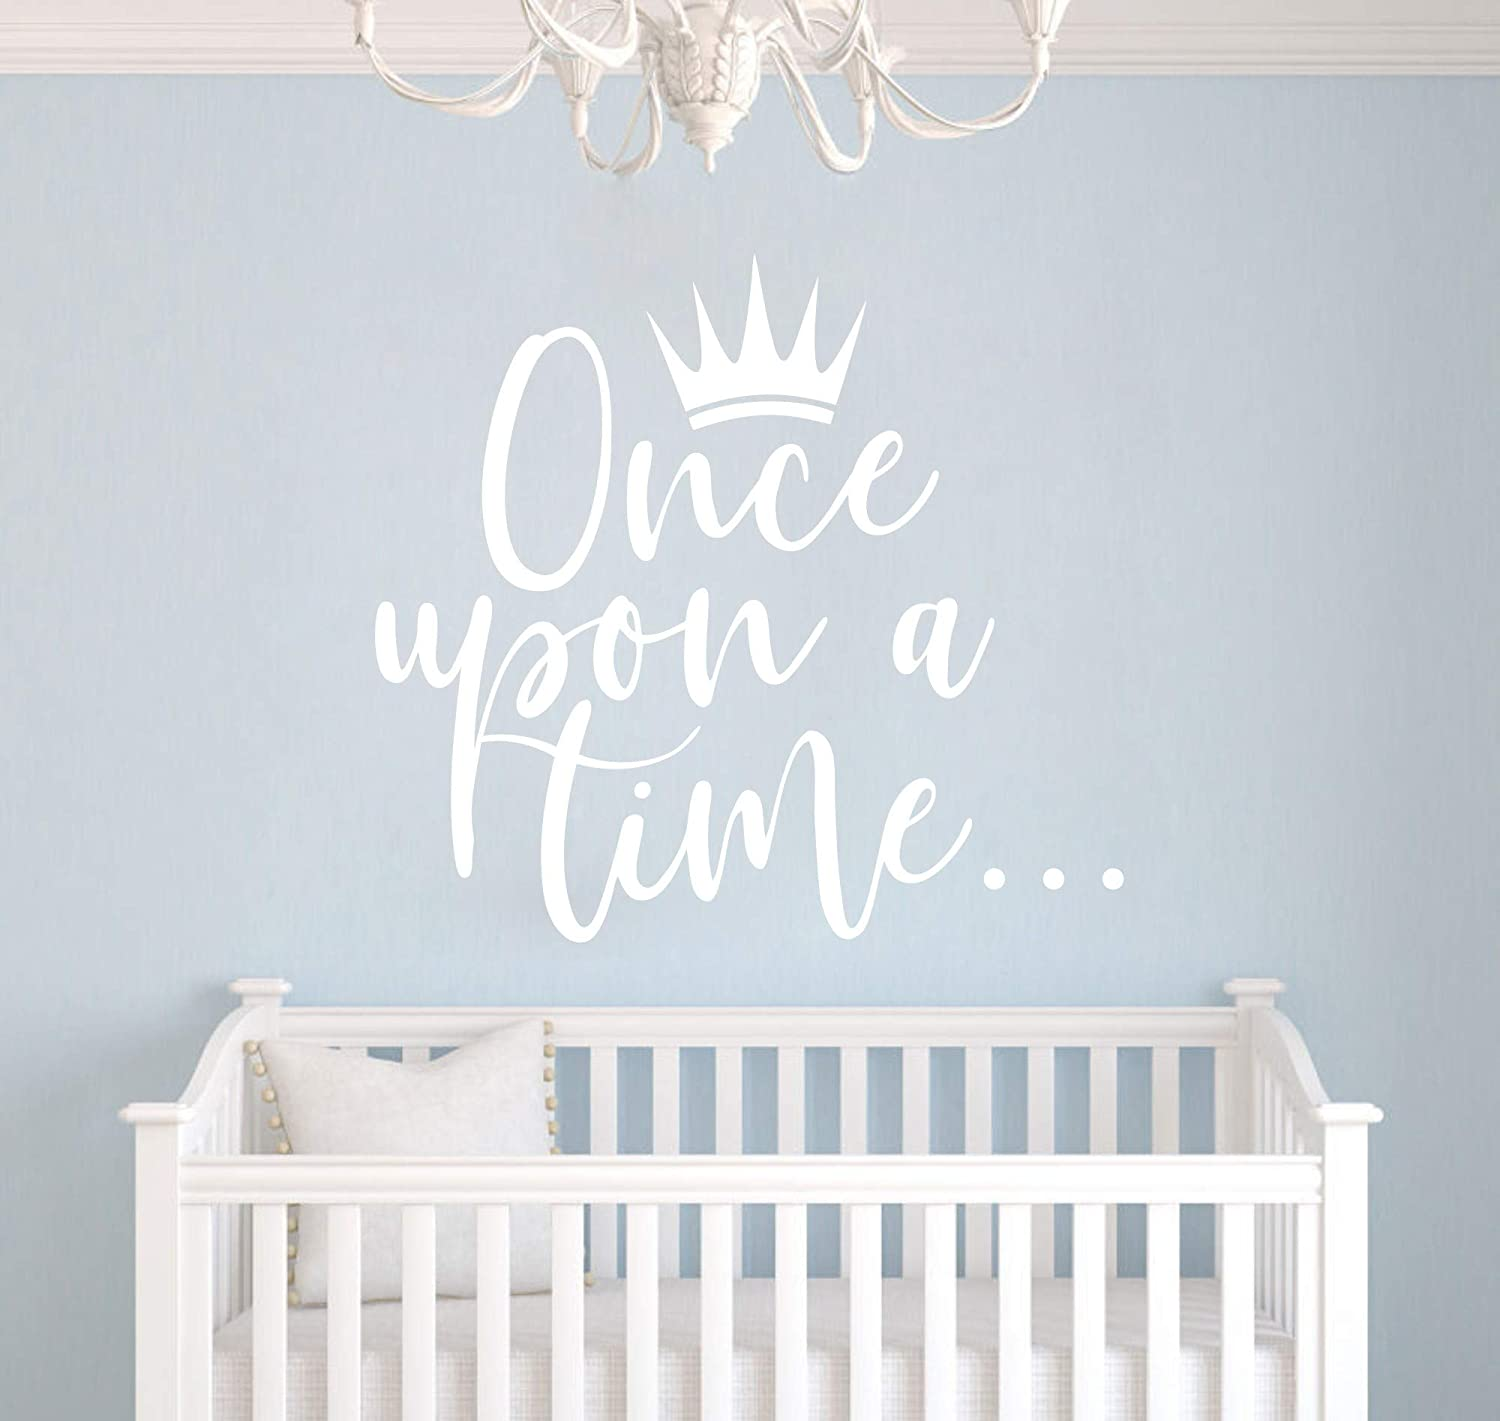 Matte Gold, 42X38CM JURUOXIN Once Upon a time with Crown Wall Sticker Art Vinyl Home Quote Decals for Kids Girl Princess Room Nursery Decoration House Interior Design YMX38